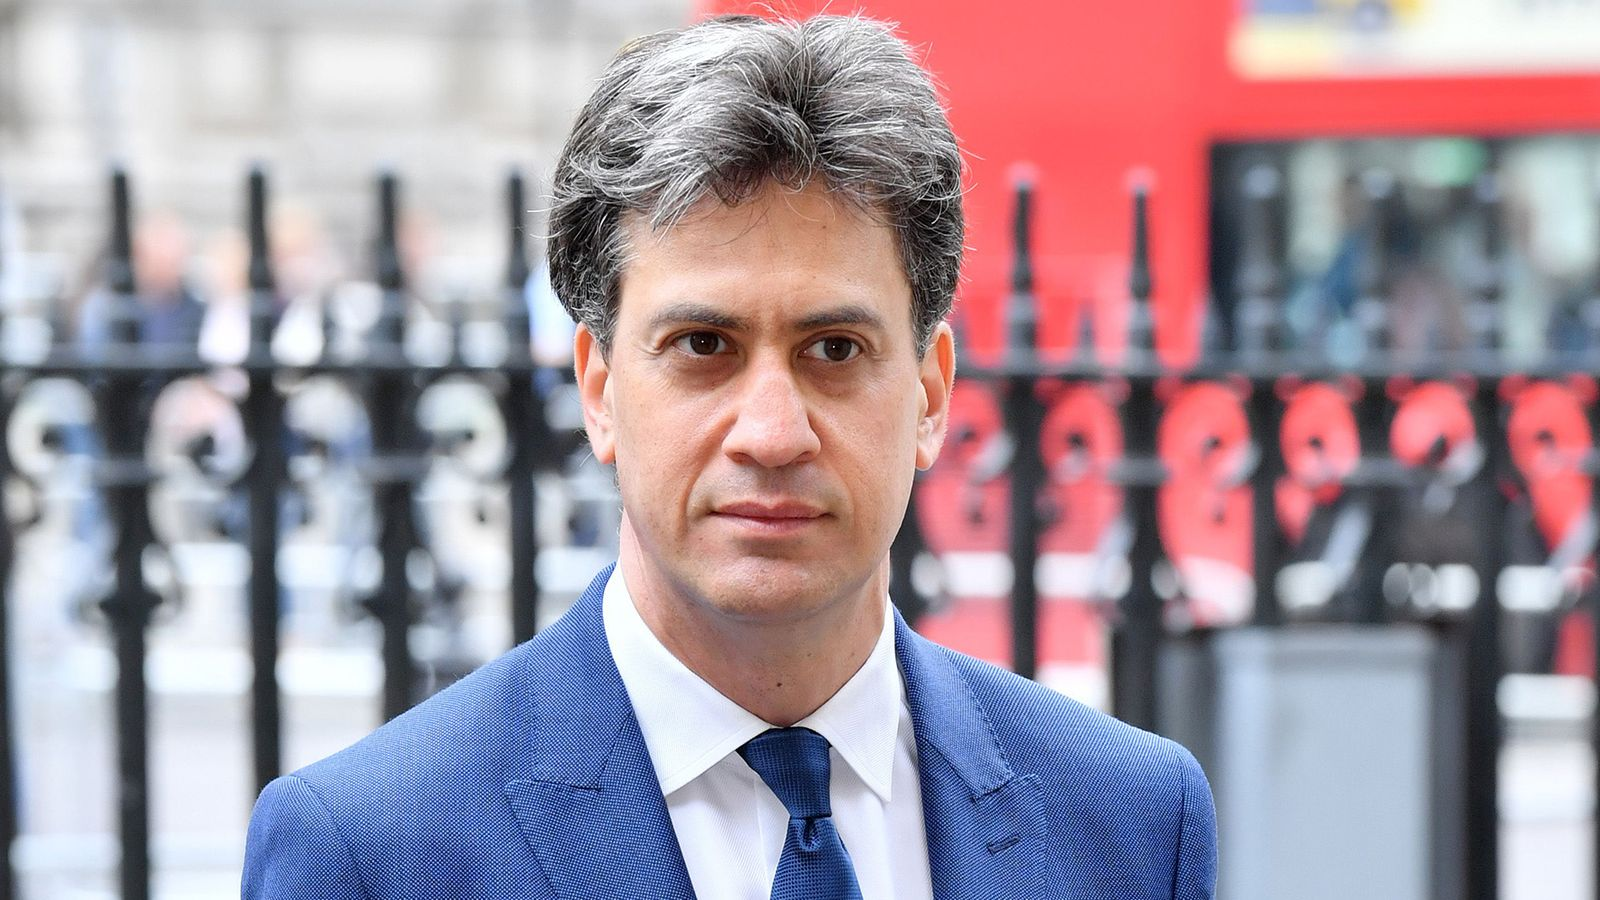 Former Labour leader Ed Miliband returns to party's front bench